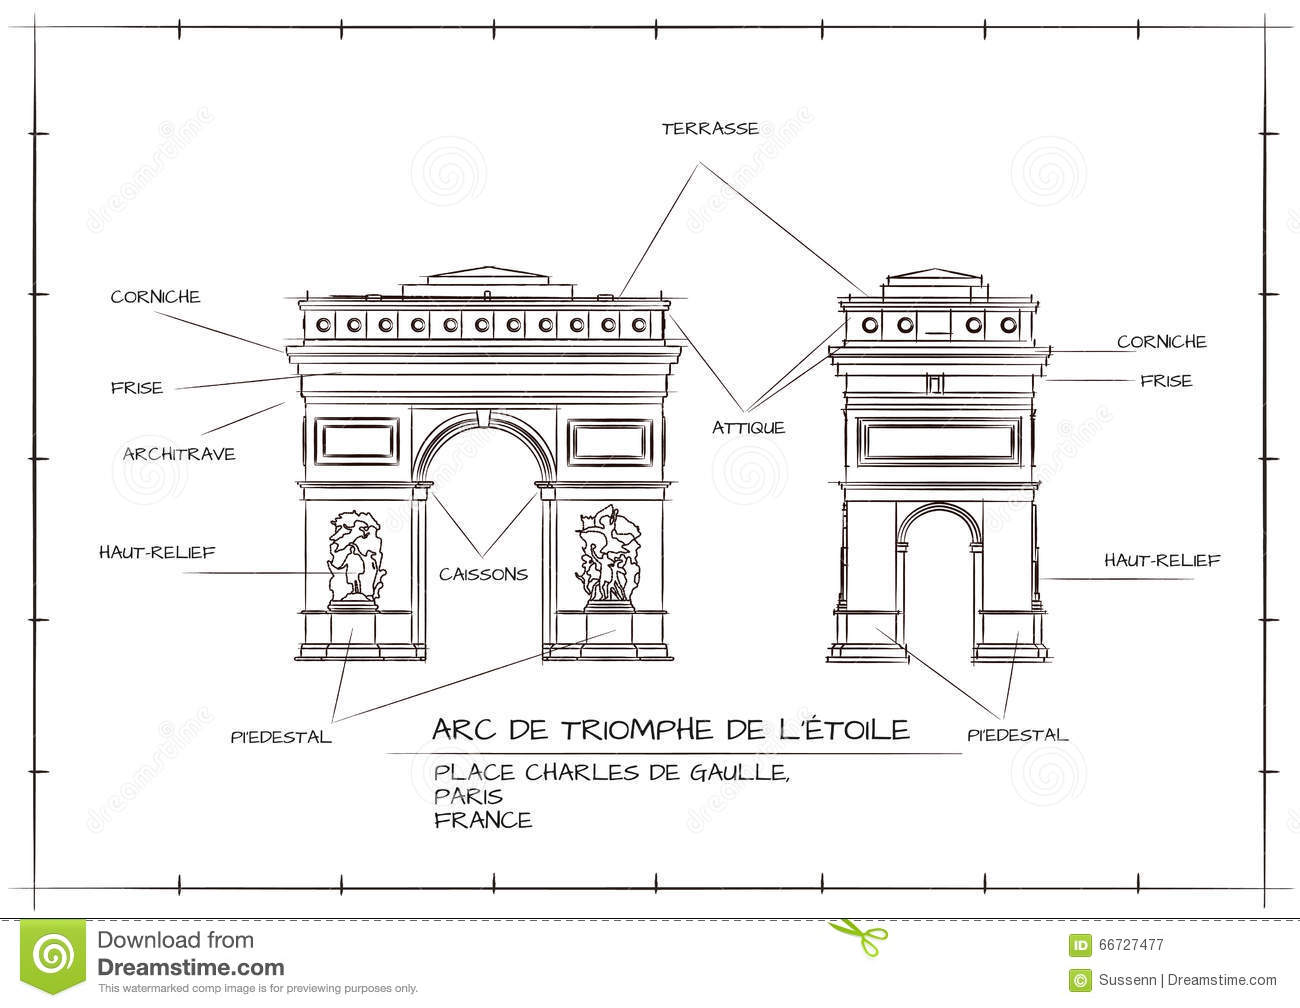 Arc de triomphe illustration de vecteur image 66727477 for Architecture technique